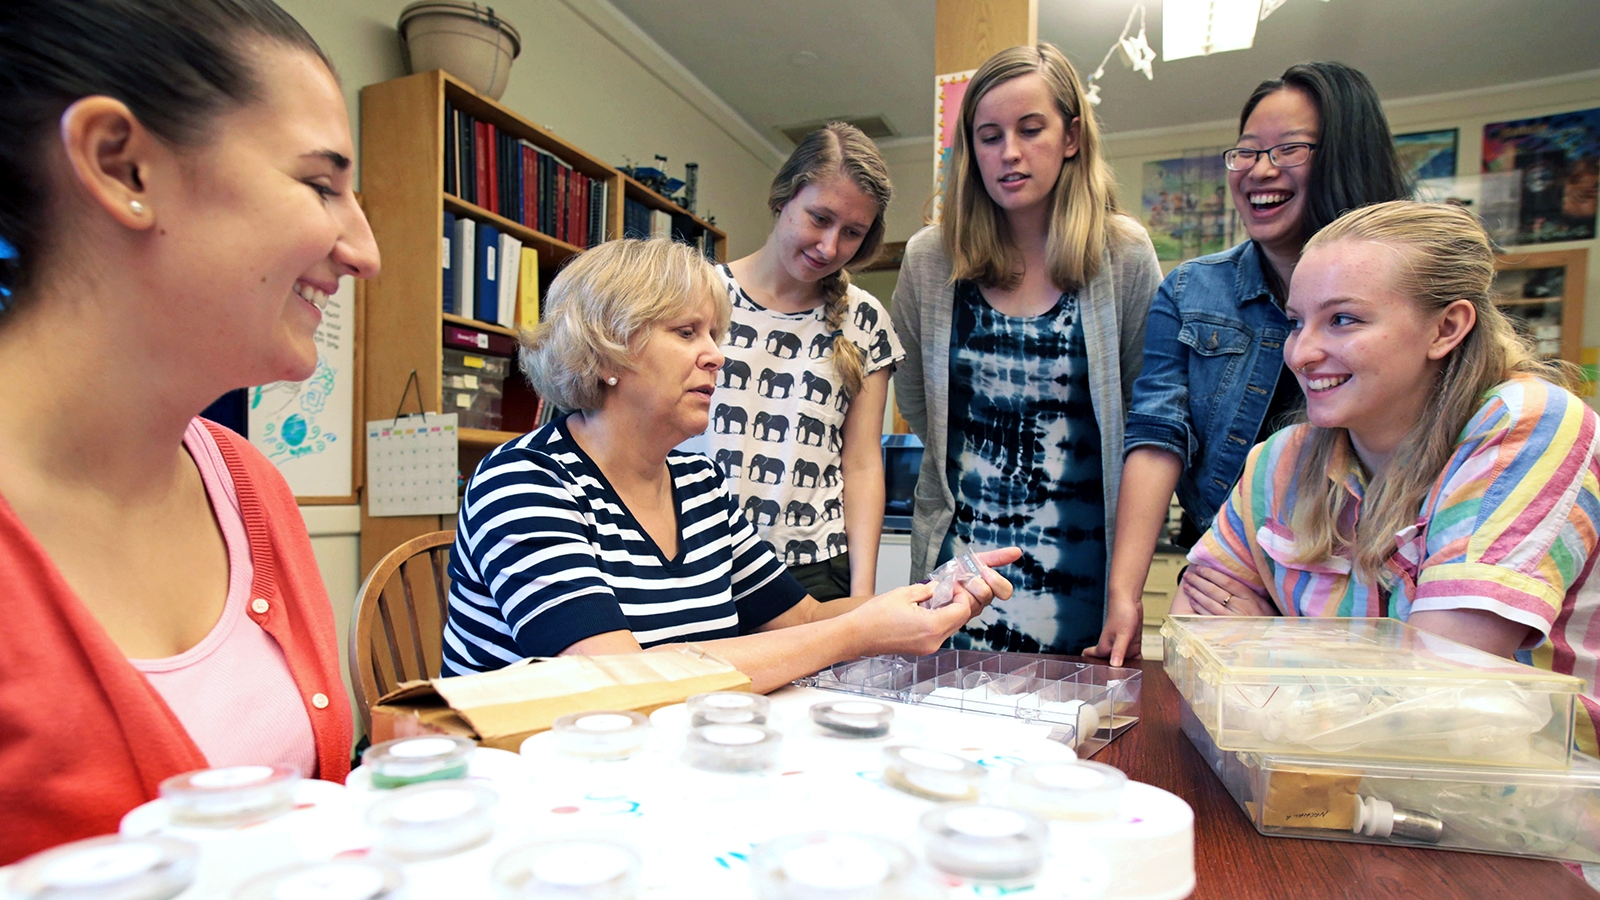 """Mount Holyoke College faculty were ranked No. 1 in """"Professors Get High Marks"""" by The Princeton Review"""